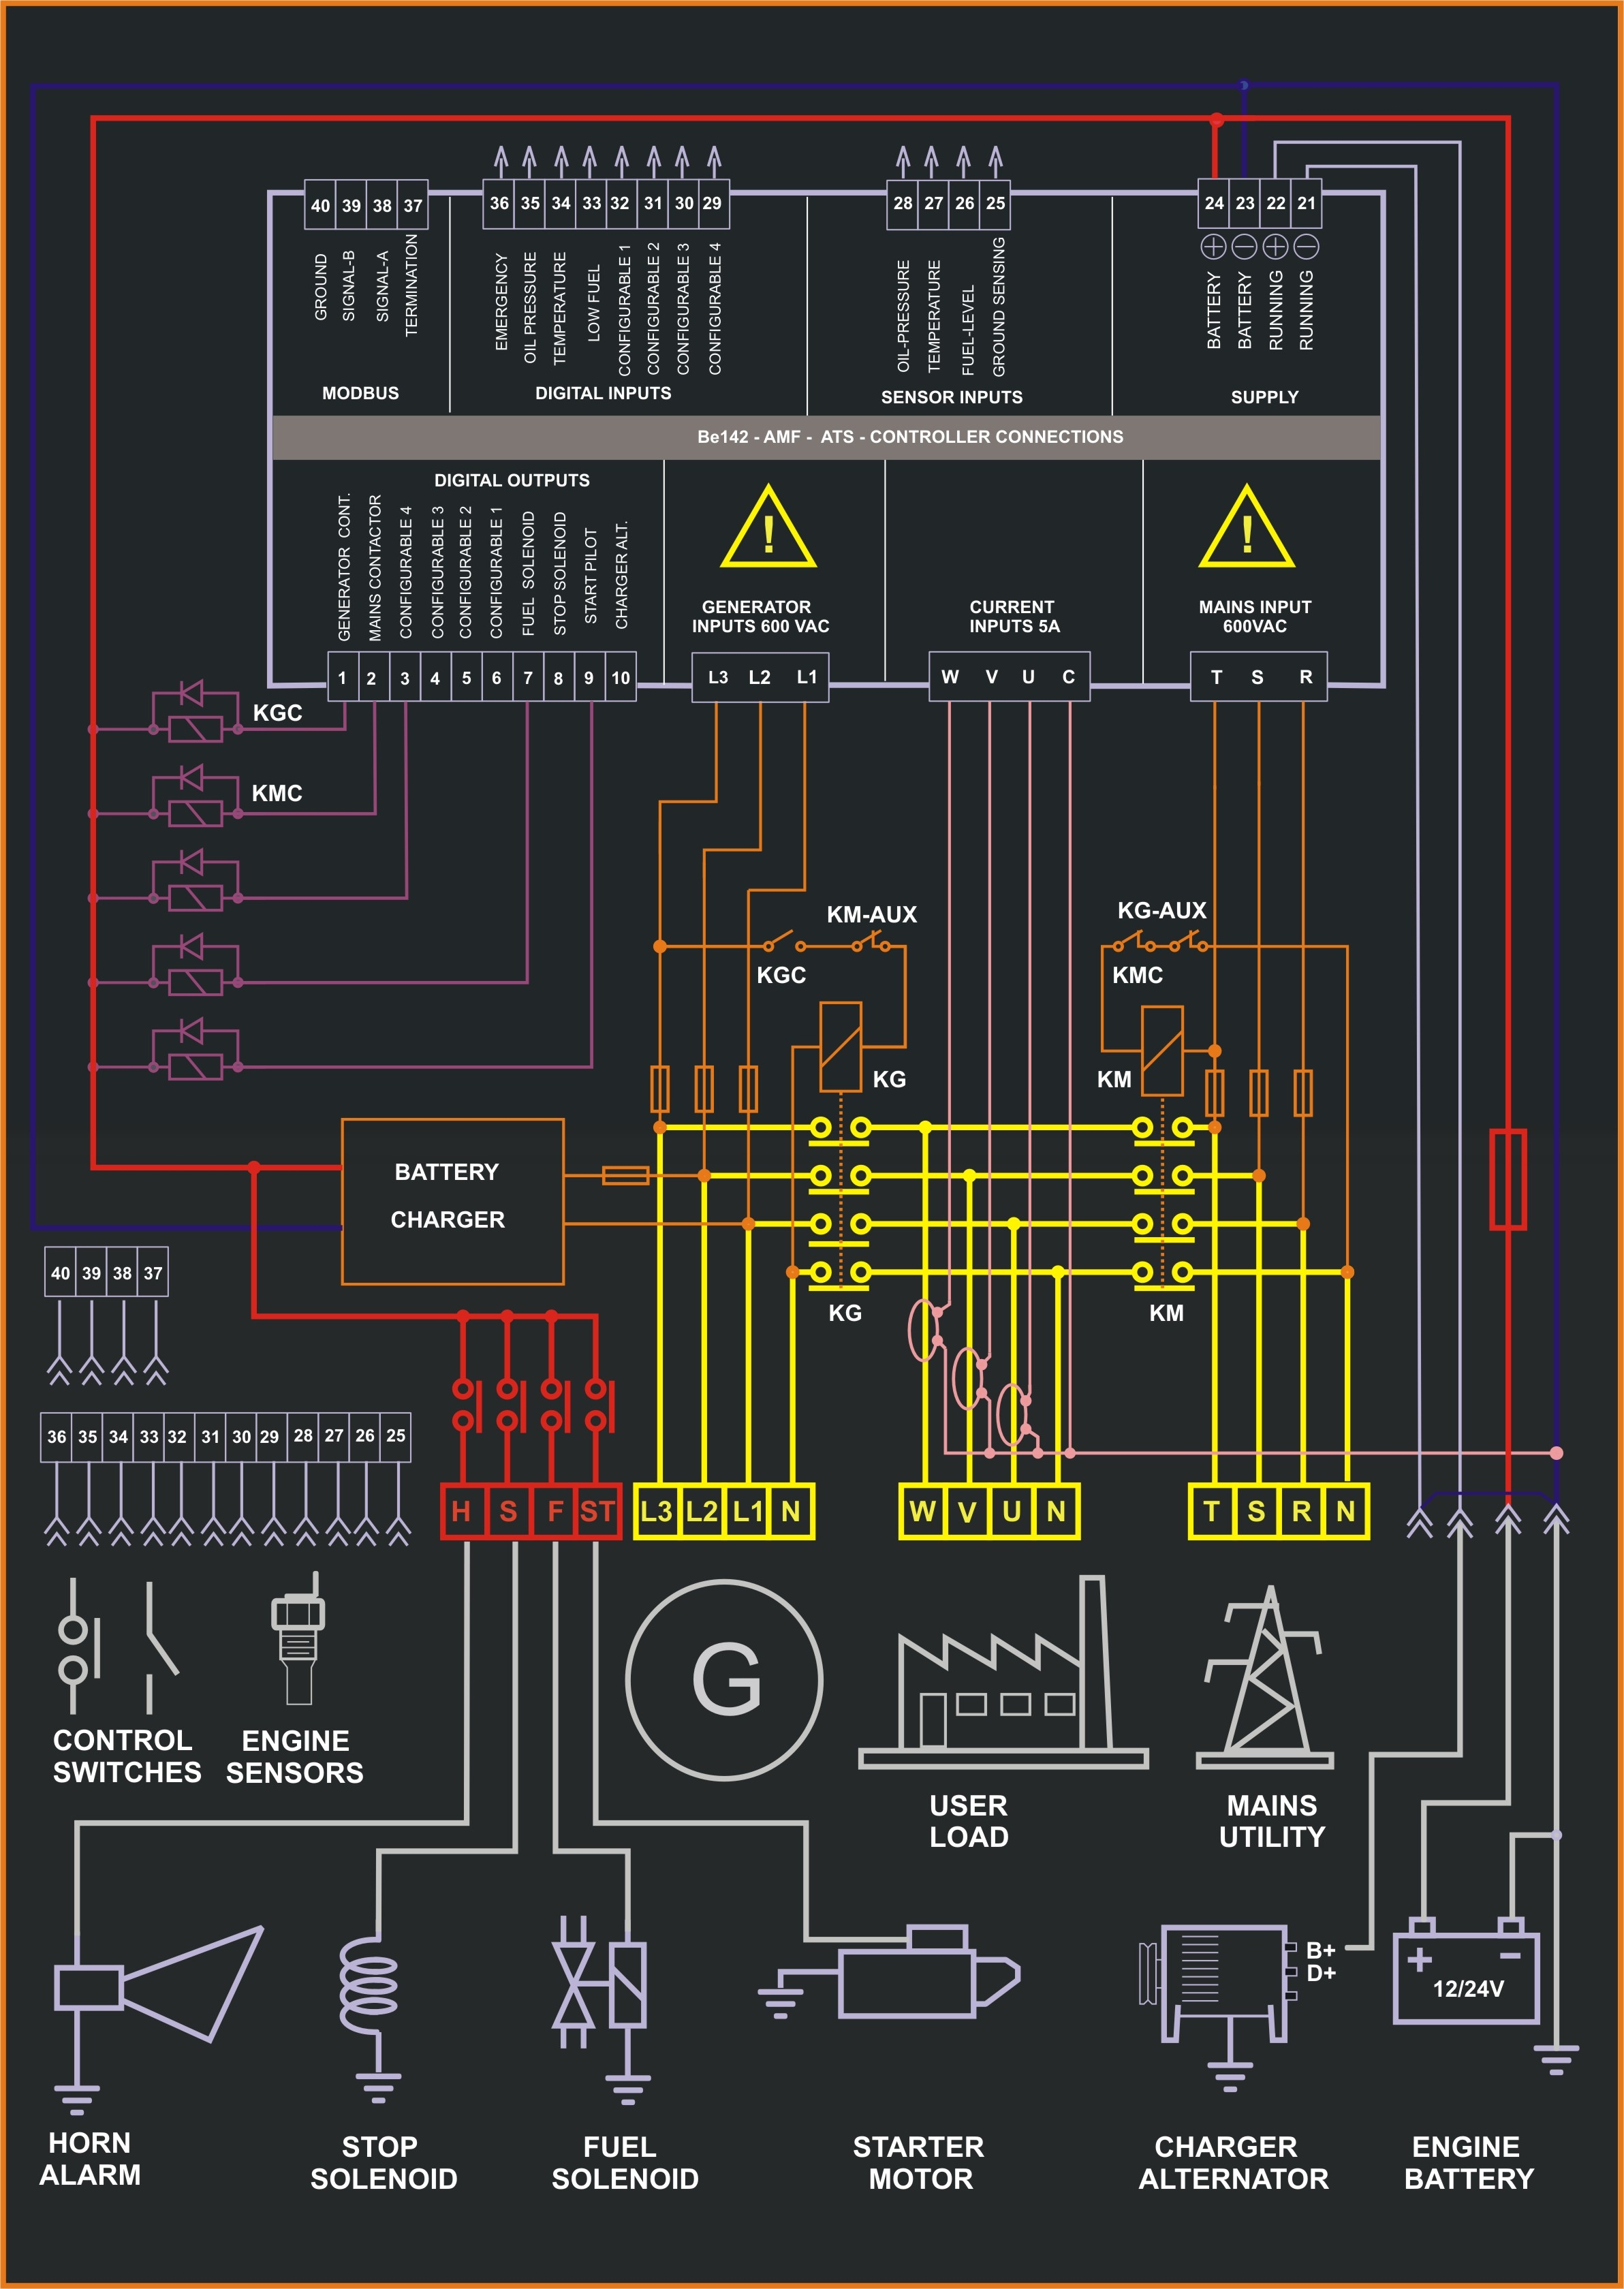 Diagram Solar Panel Circuit Diagram Full Version Hd Quality Circuit Diagram Diagramgotchj Heartzclub It